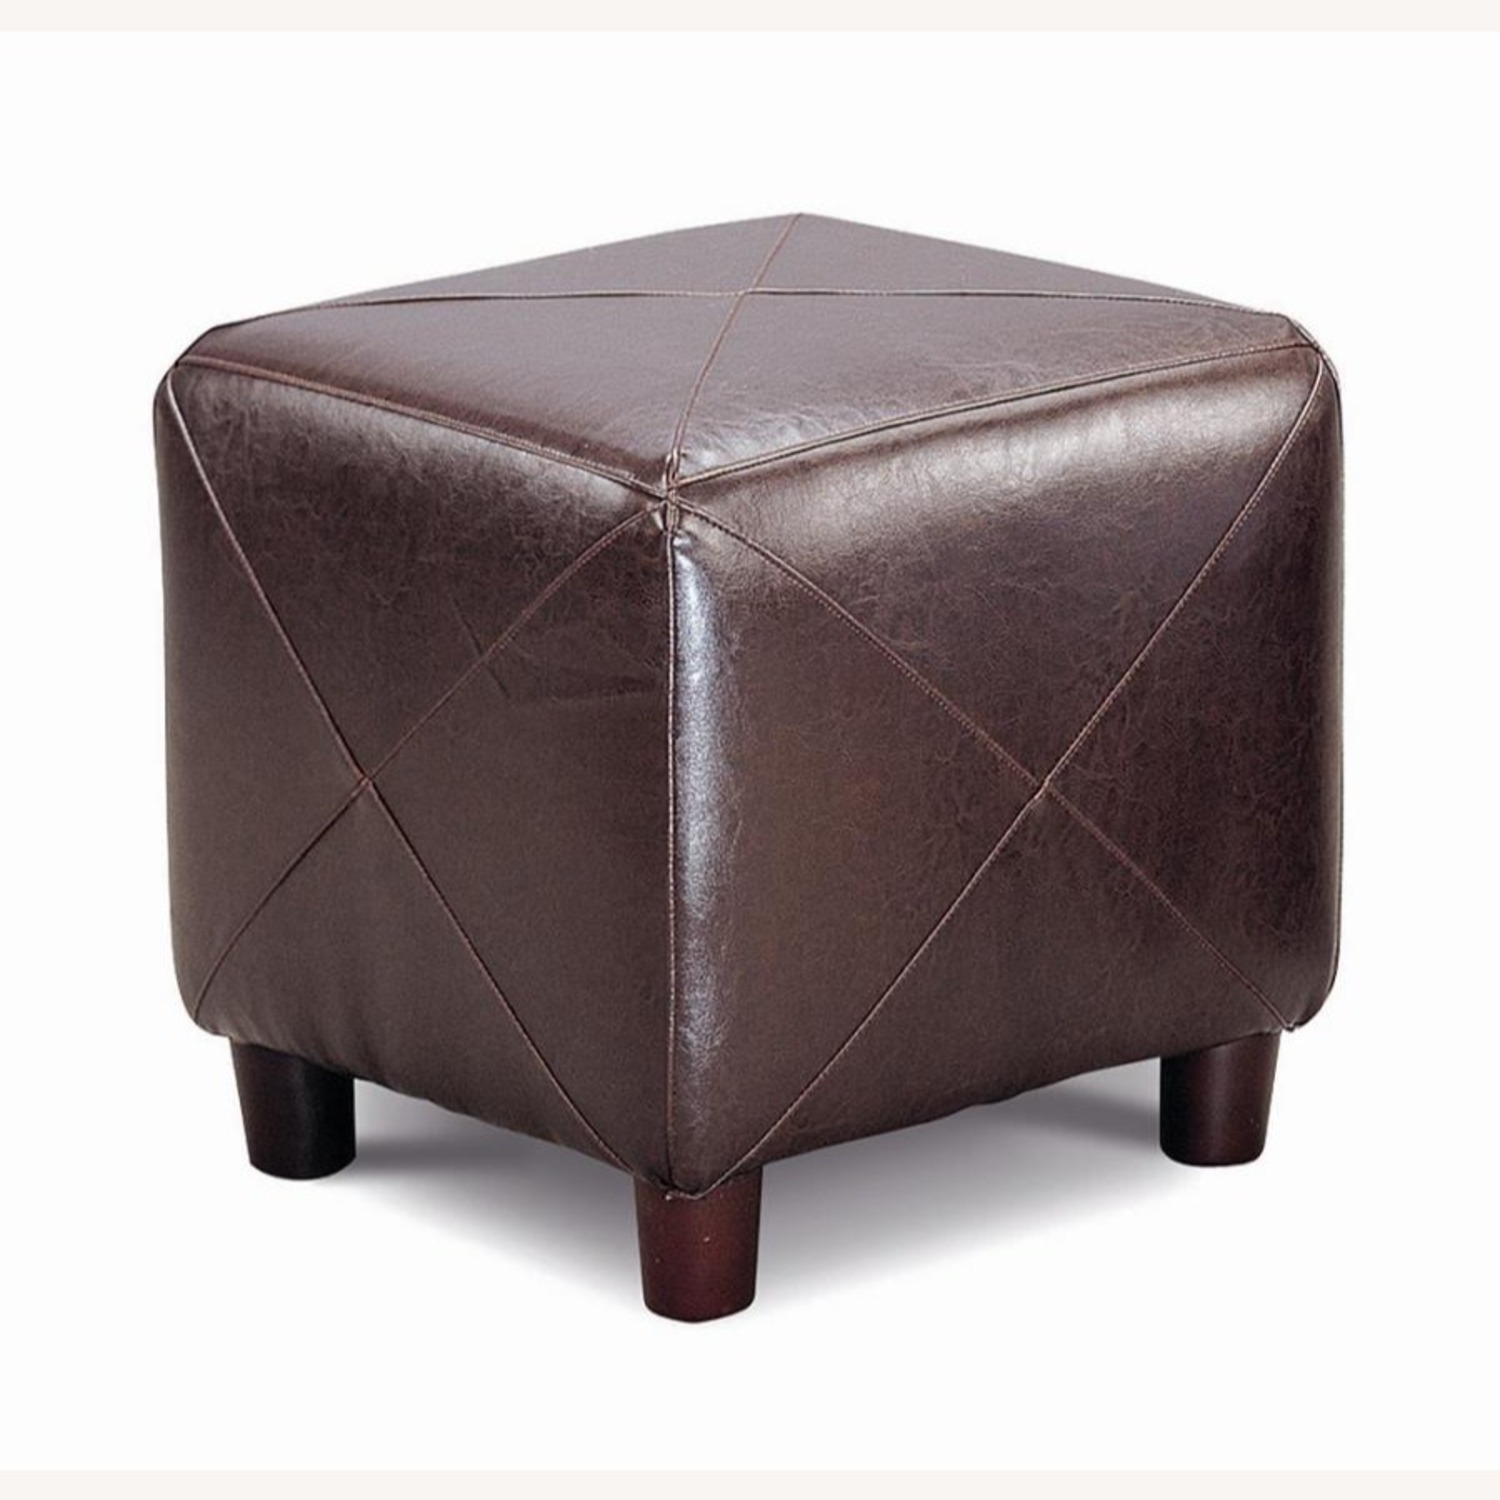 Ottoman In Dark Brown W/ Tapered Legs - image-1